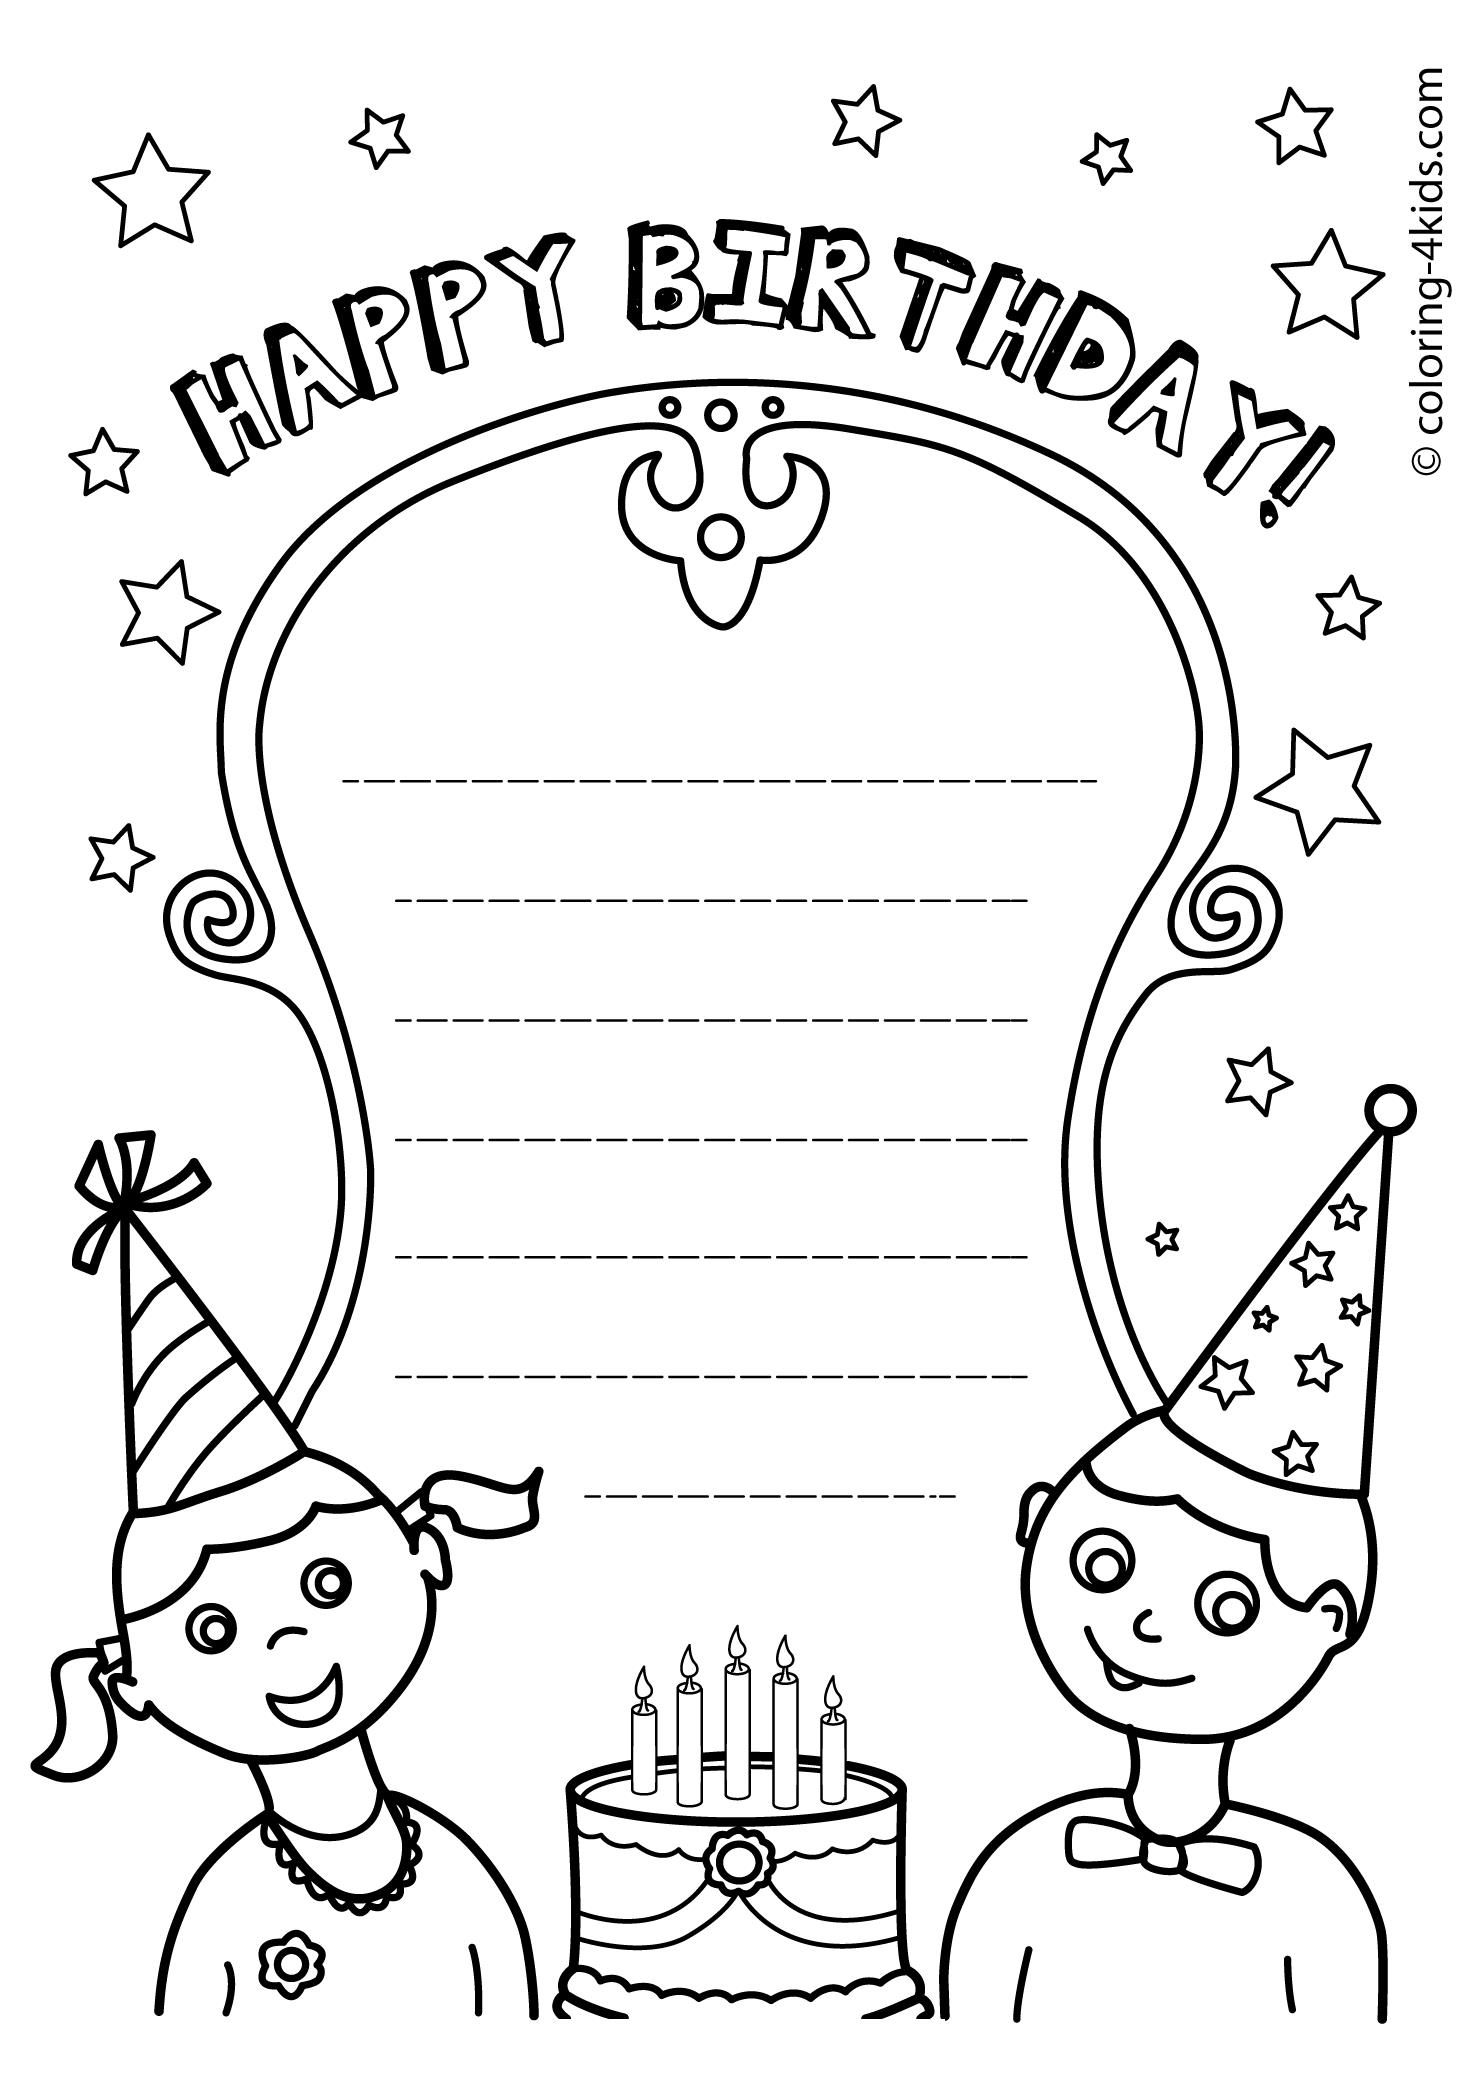 happy birthday pictures to color and print ; birthday-coloring-pages-to-print-11